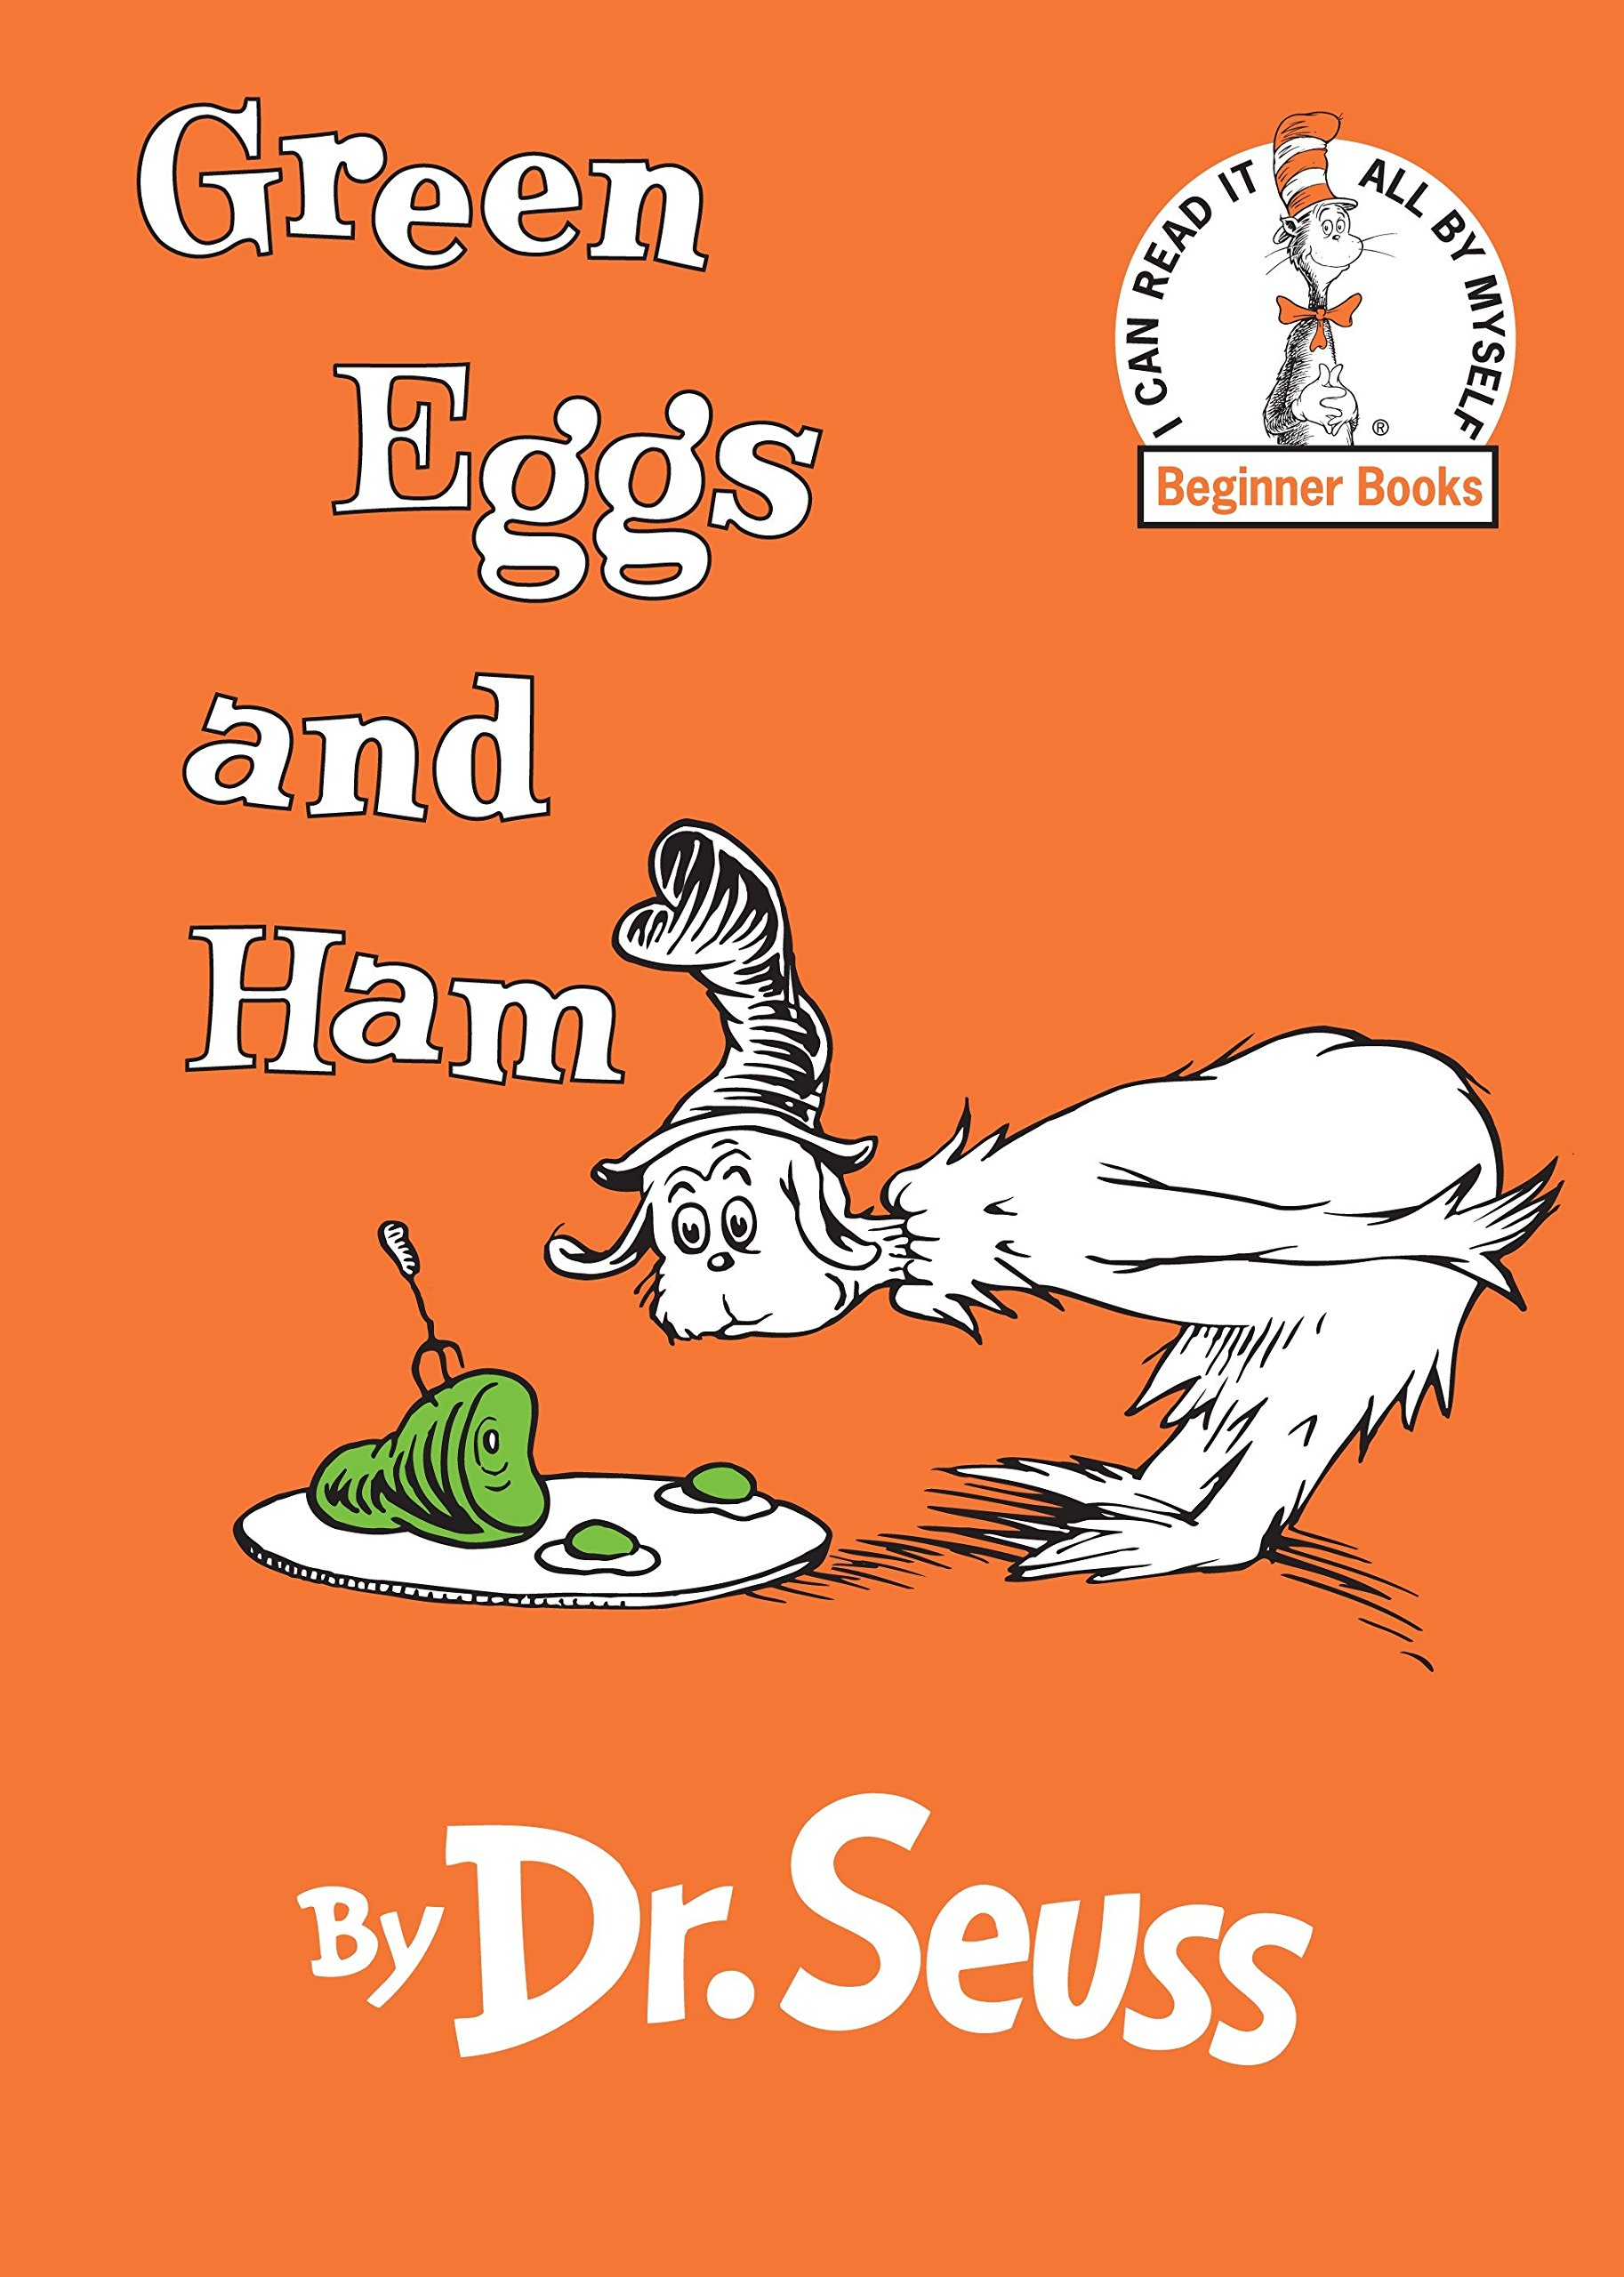 dr seuss green eggs and ham read online